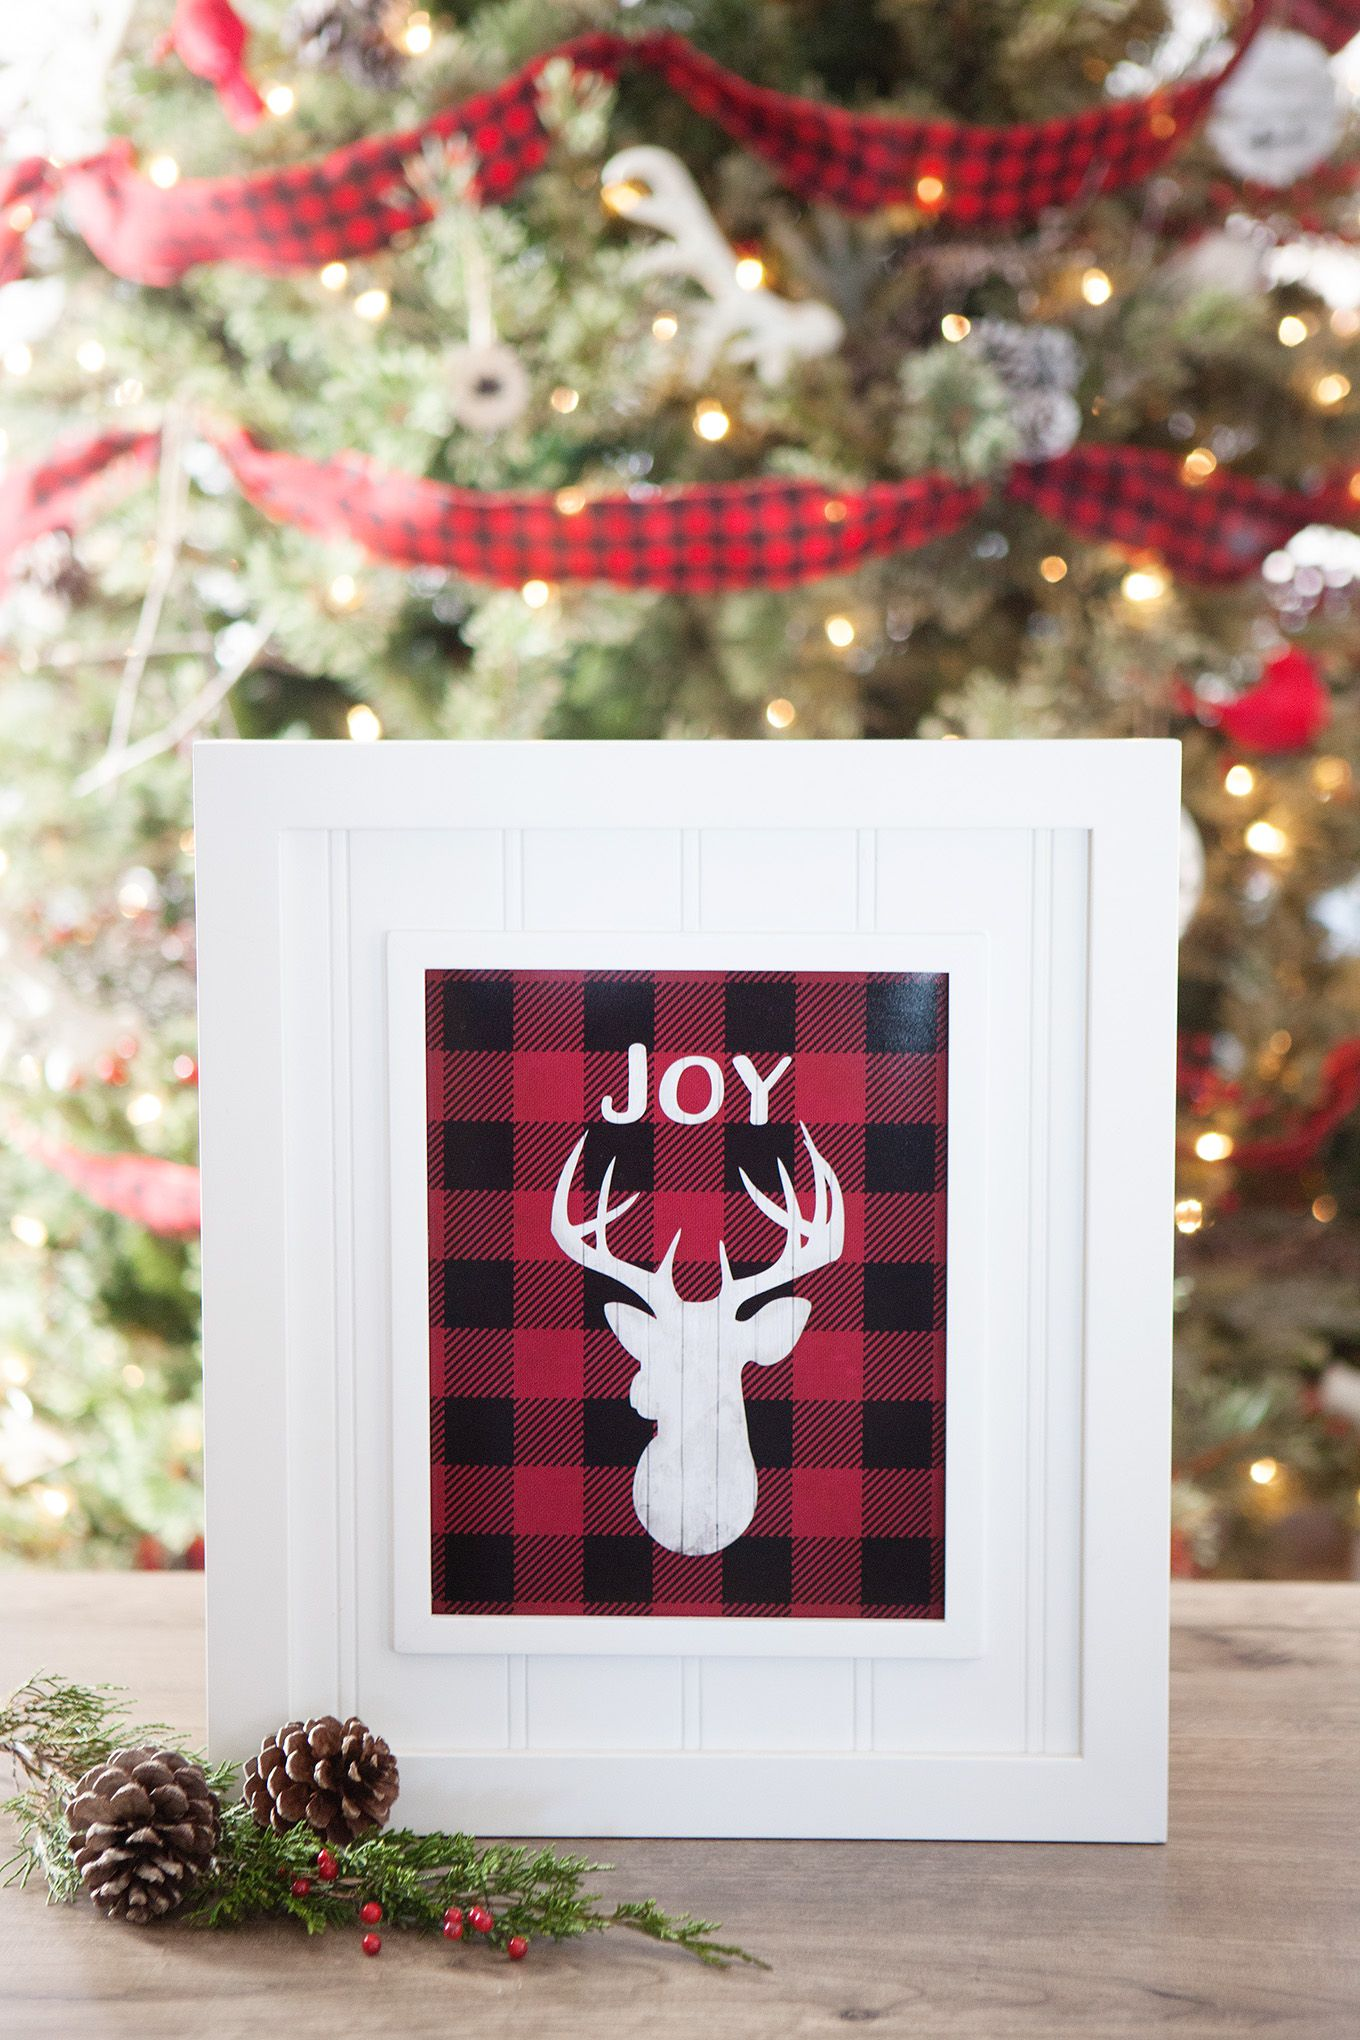 Free Buffalo Check Plaid Christmas Printables is part of Buffalo check christmas decor, Buffalo check plaid christmas, Free christmas printables, Plaid christmas decor, Buffalo plaid christmas, Christmas printables - Add a little rustic, outdoorsy flair to your holiday decor and gift wrapping with these free buffalo check plaid Christmas printables